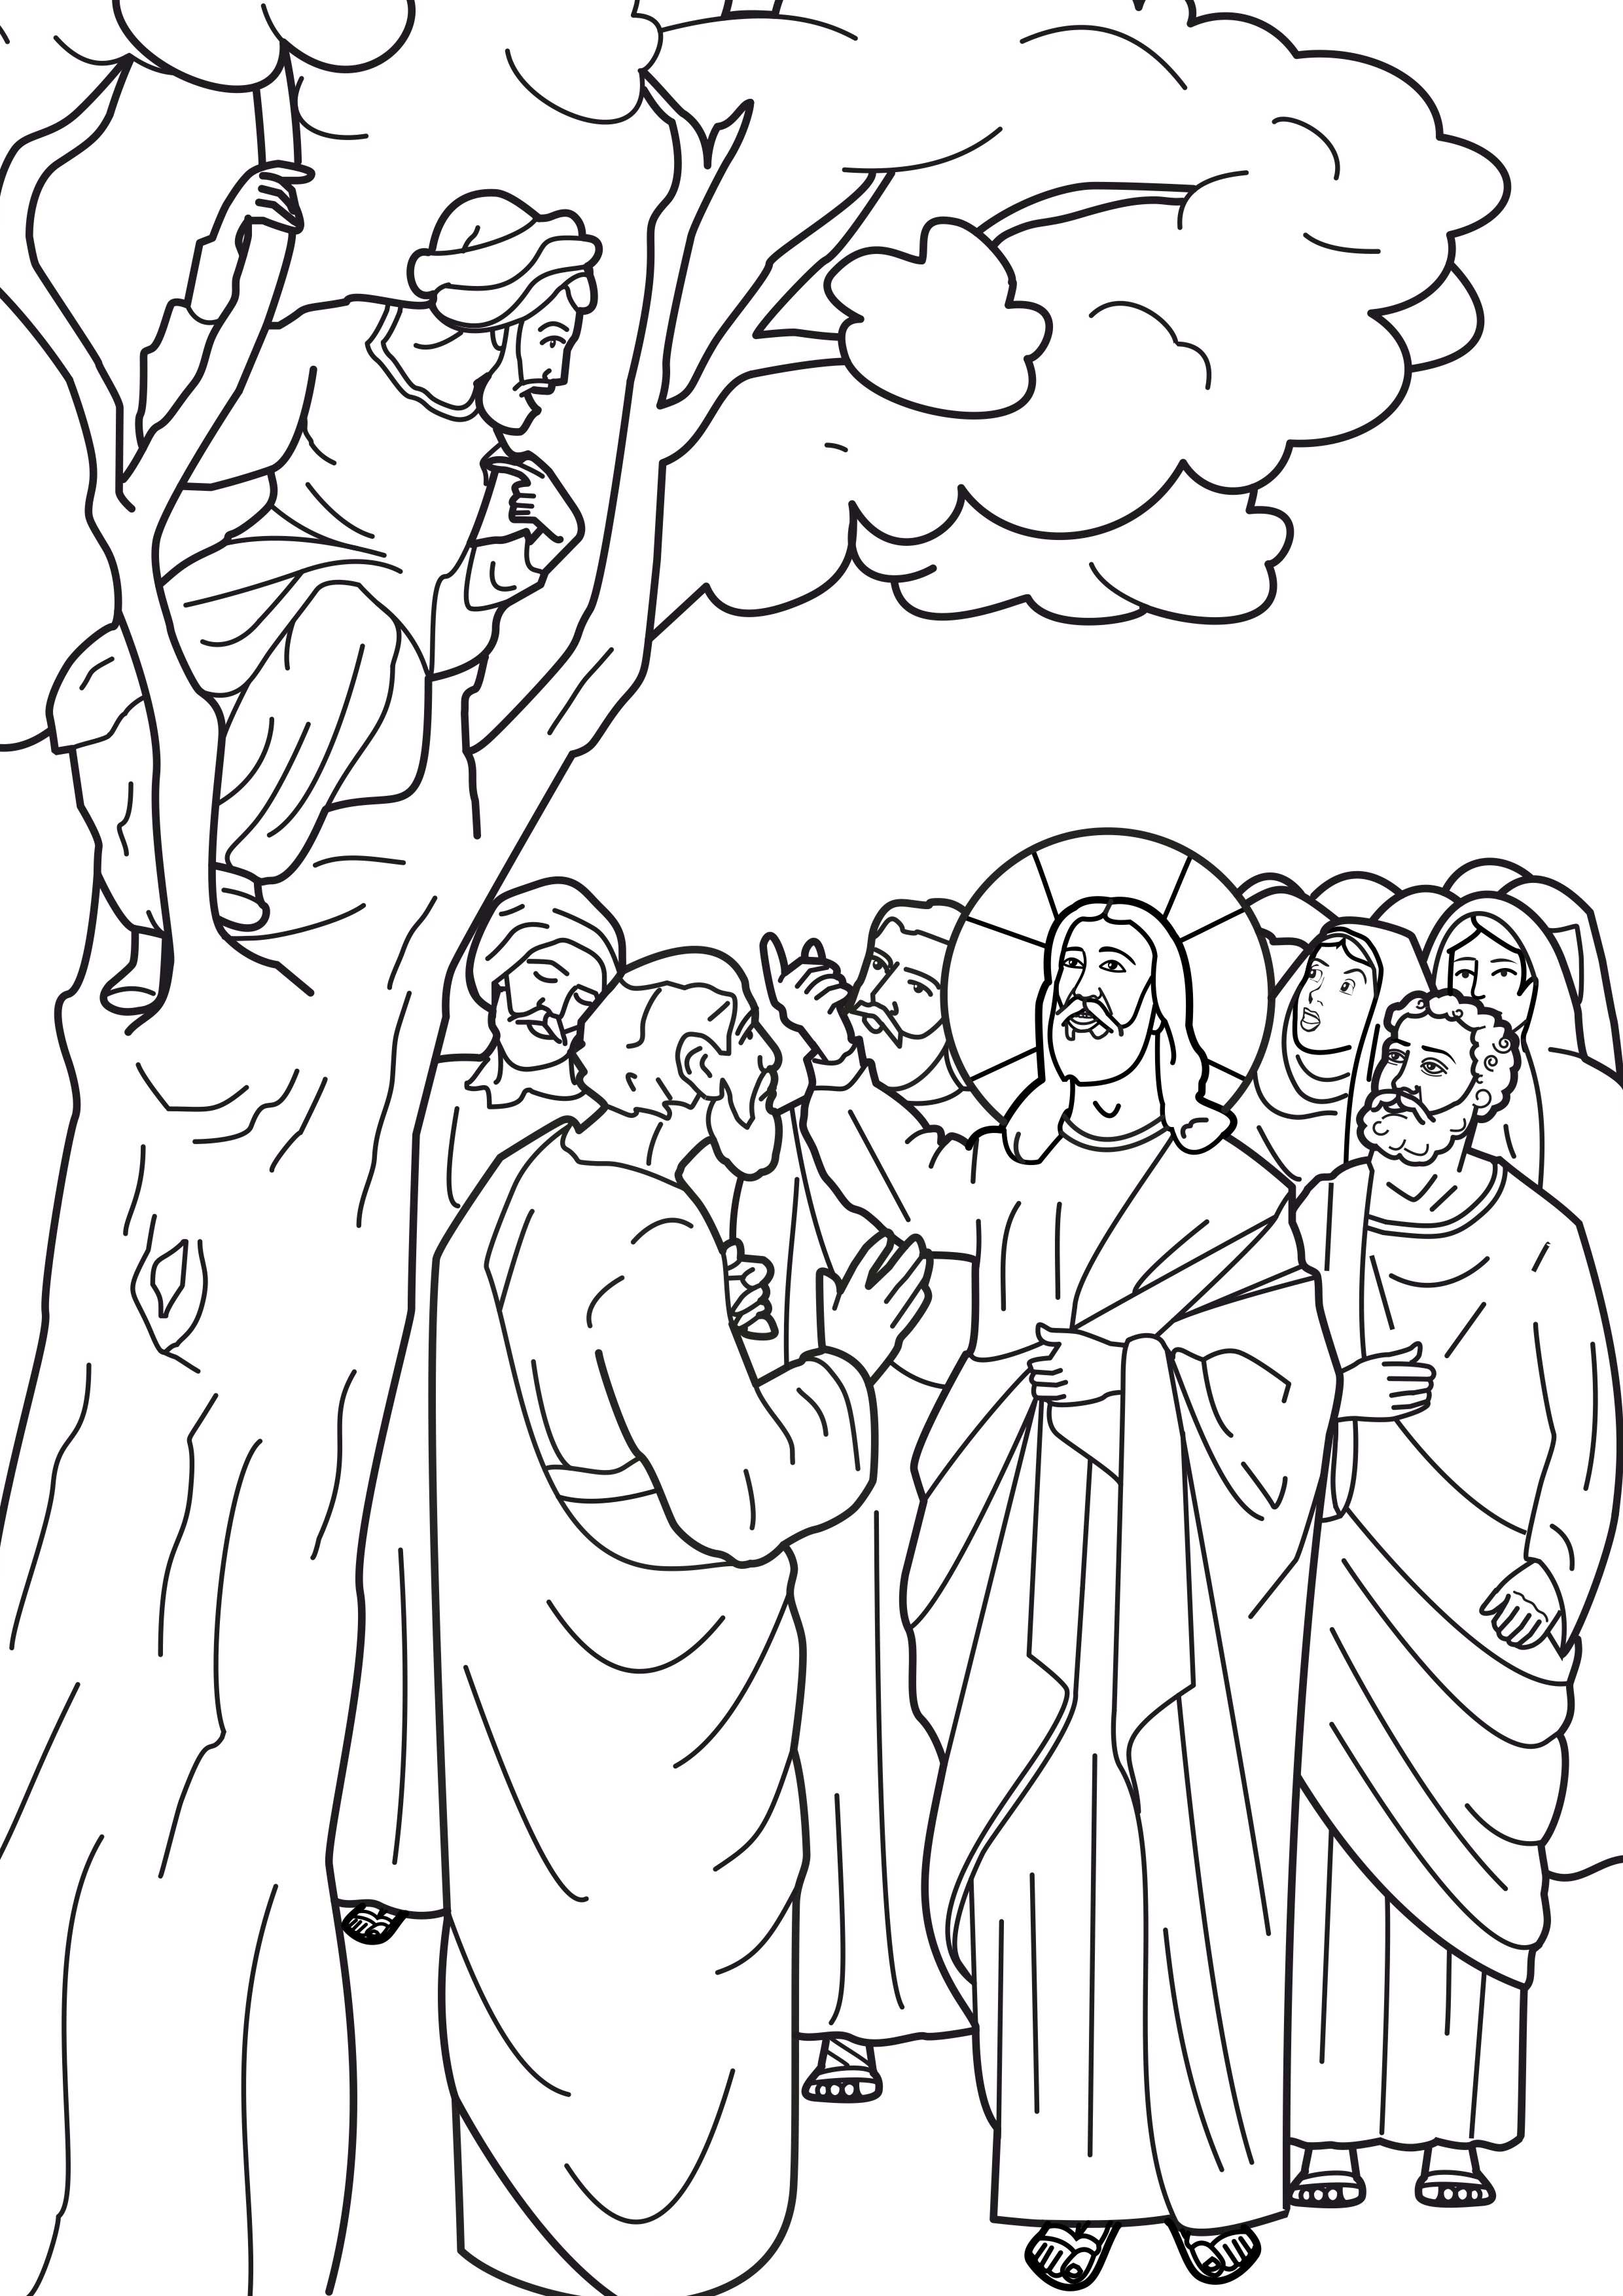 coloring pages zachius - photo #11